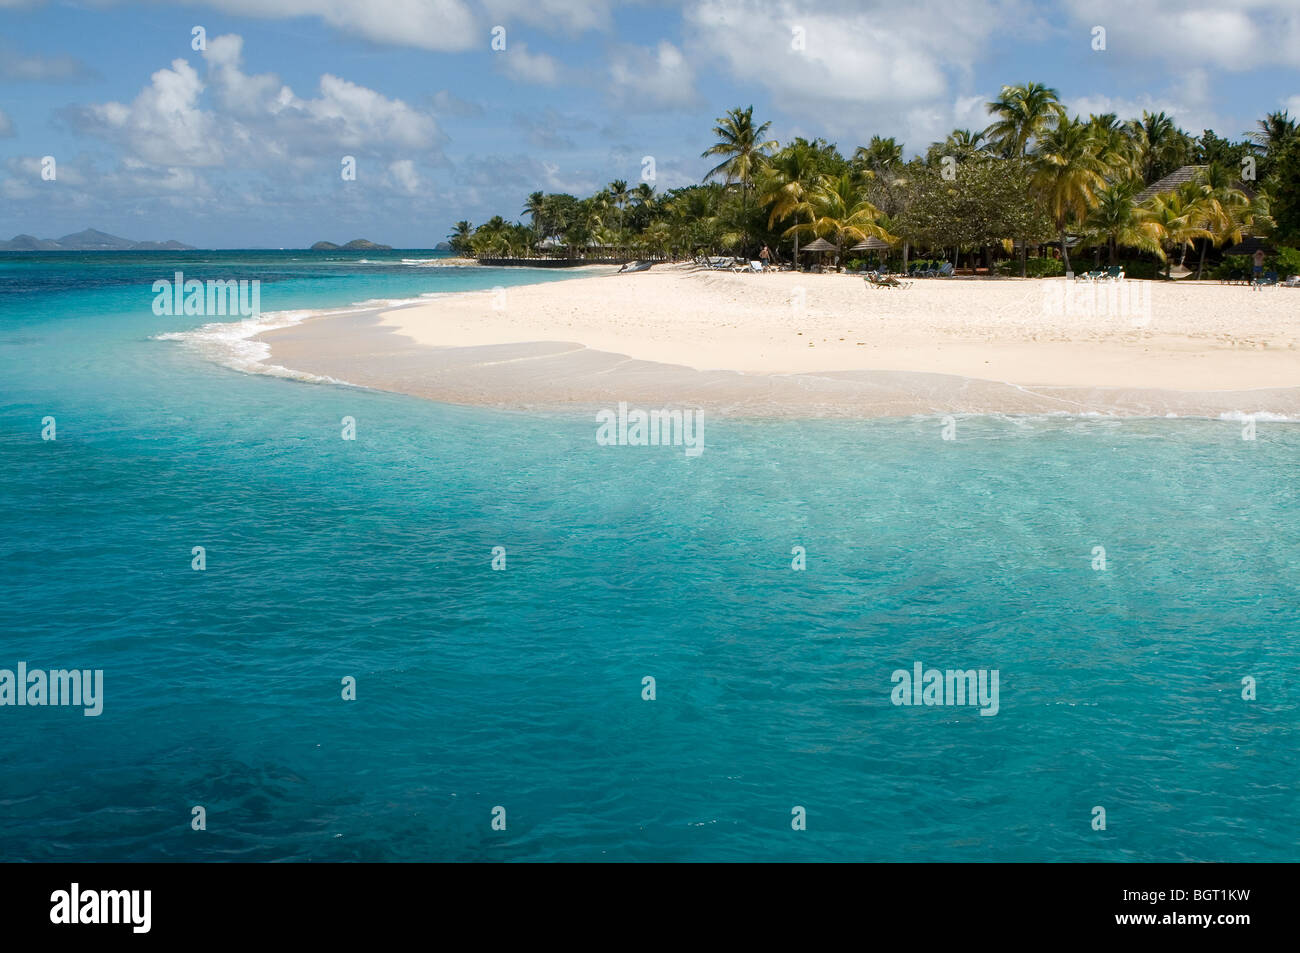 Desert Island, White Coral Sand and Turquoise Sea - Stock Image